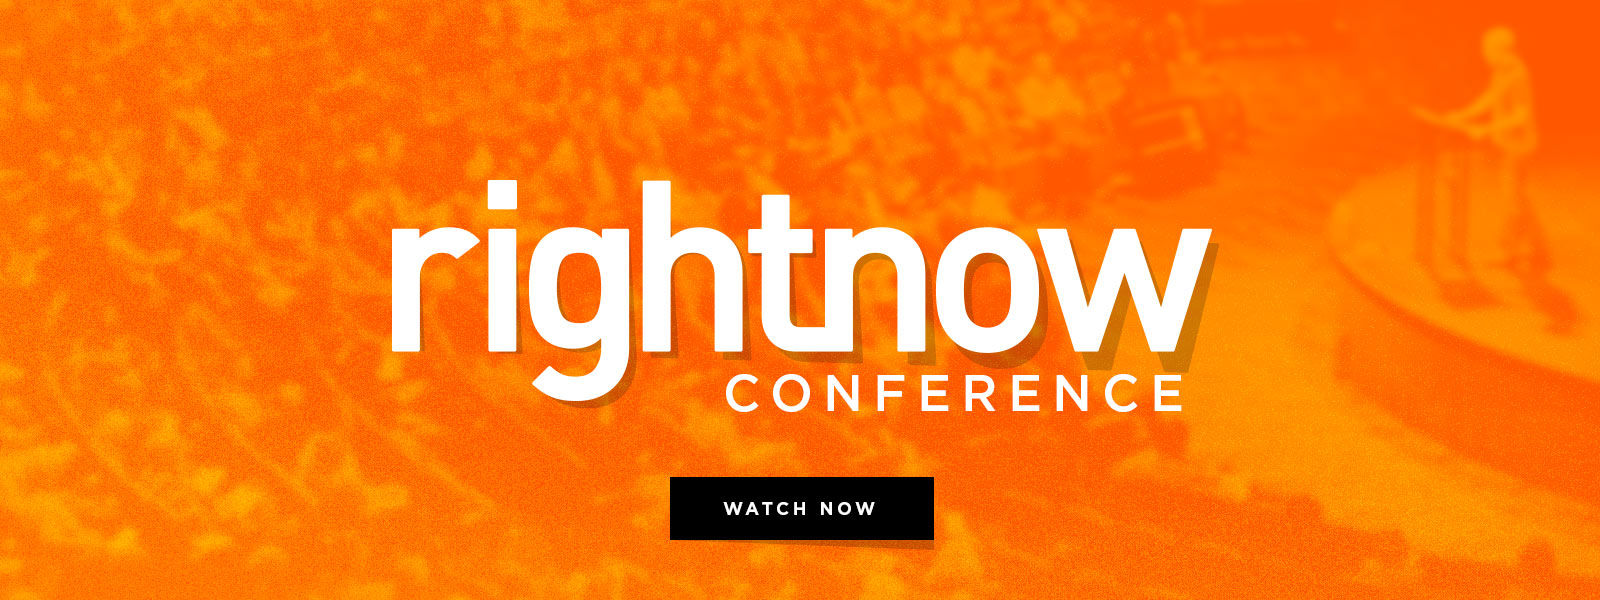 RightNow Conference